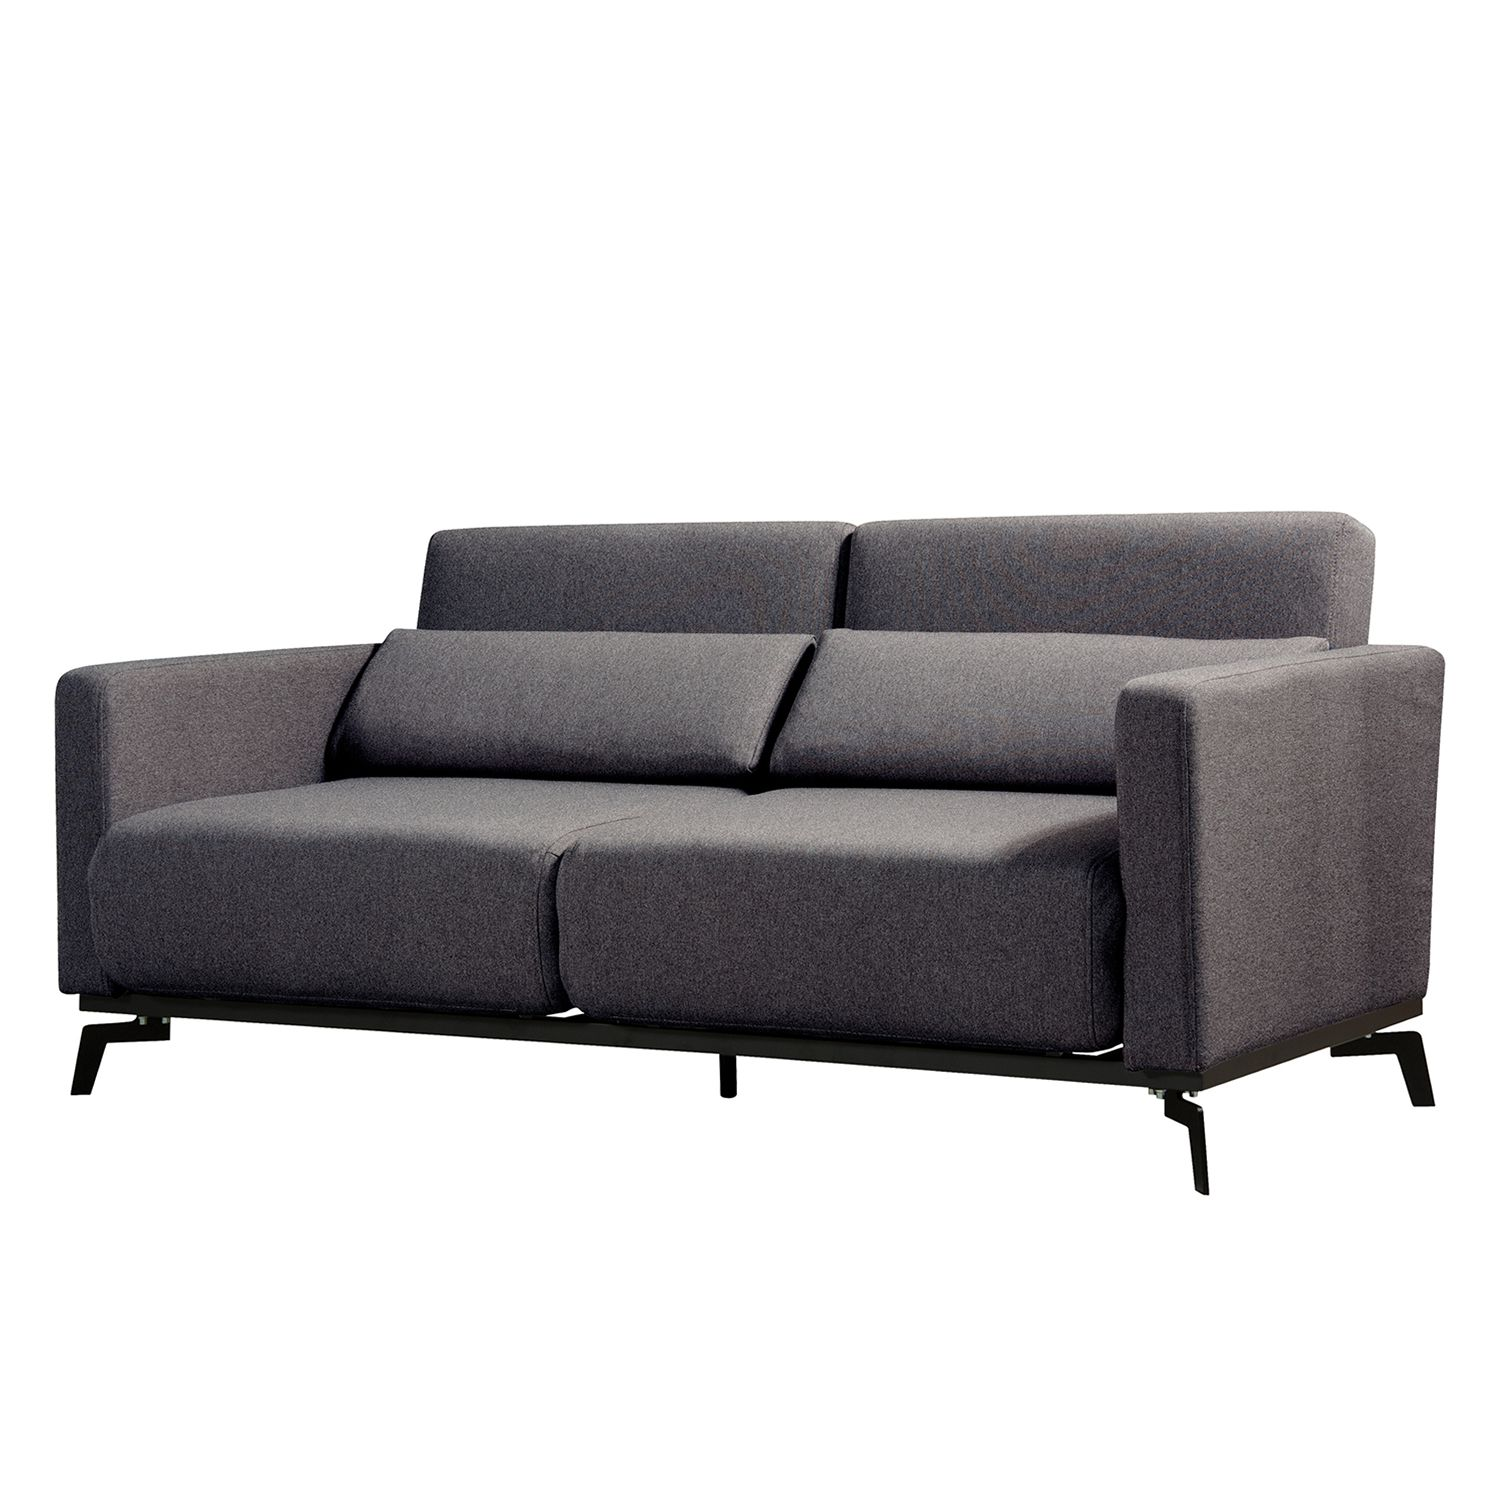 schlafsofa maven webstoff stoff bora grau meliert online bestellen. Black Bedroom Furniture Sets. Home Design Ideas